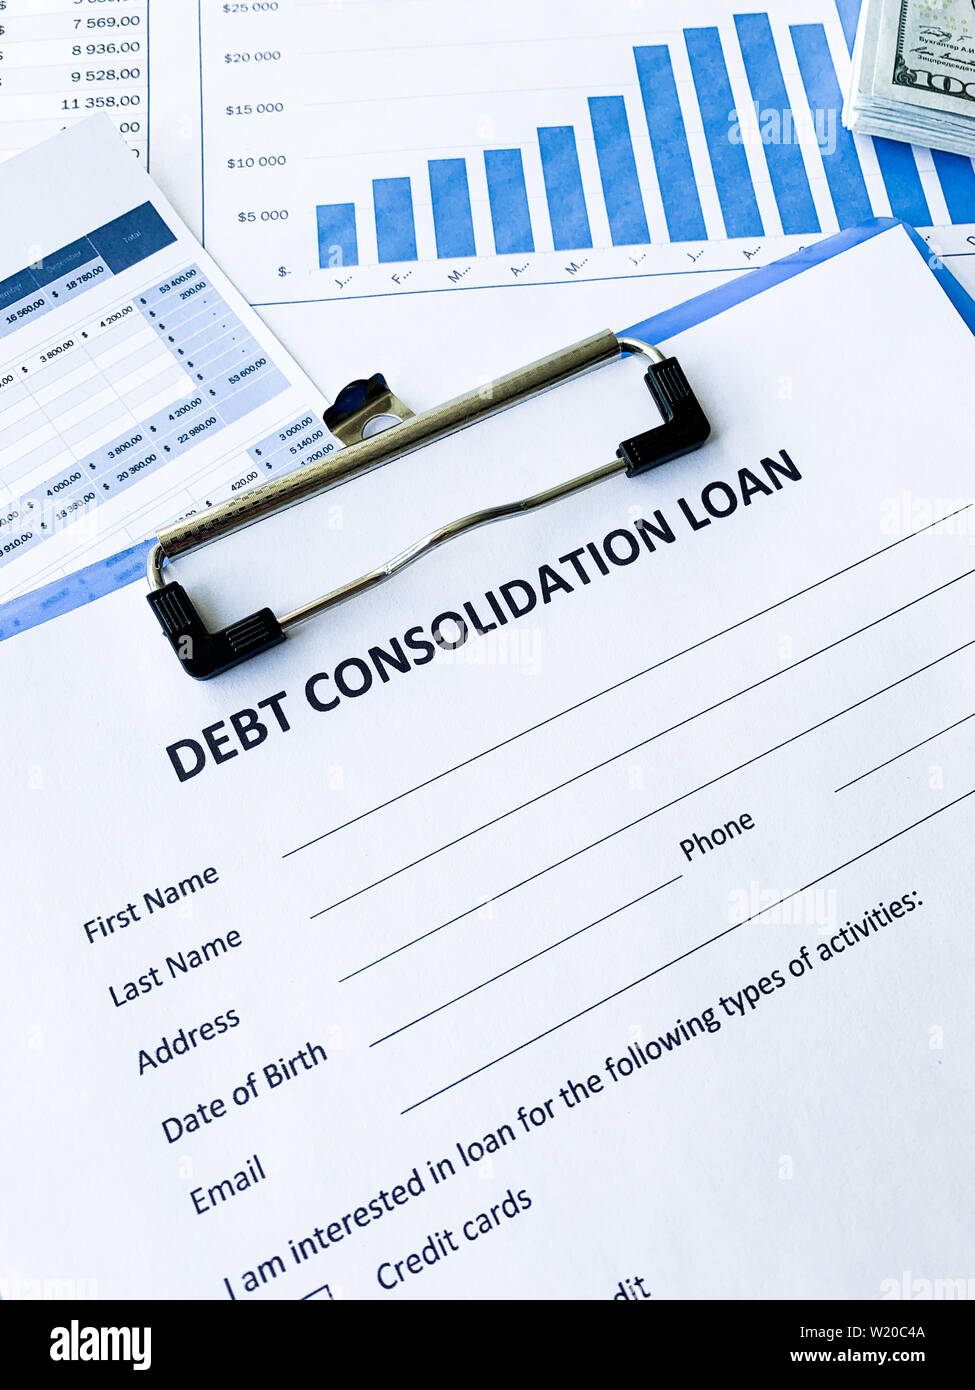 Debt consolidation loan document with graph on table. - Stock Image